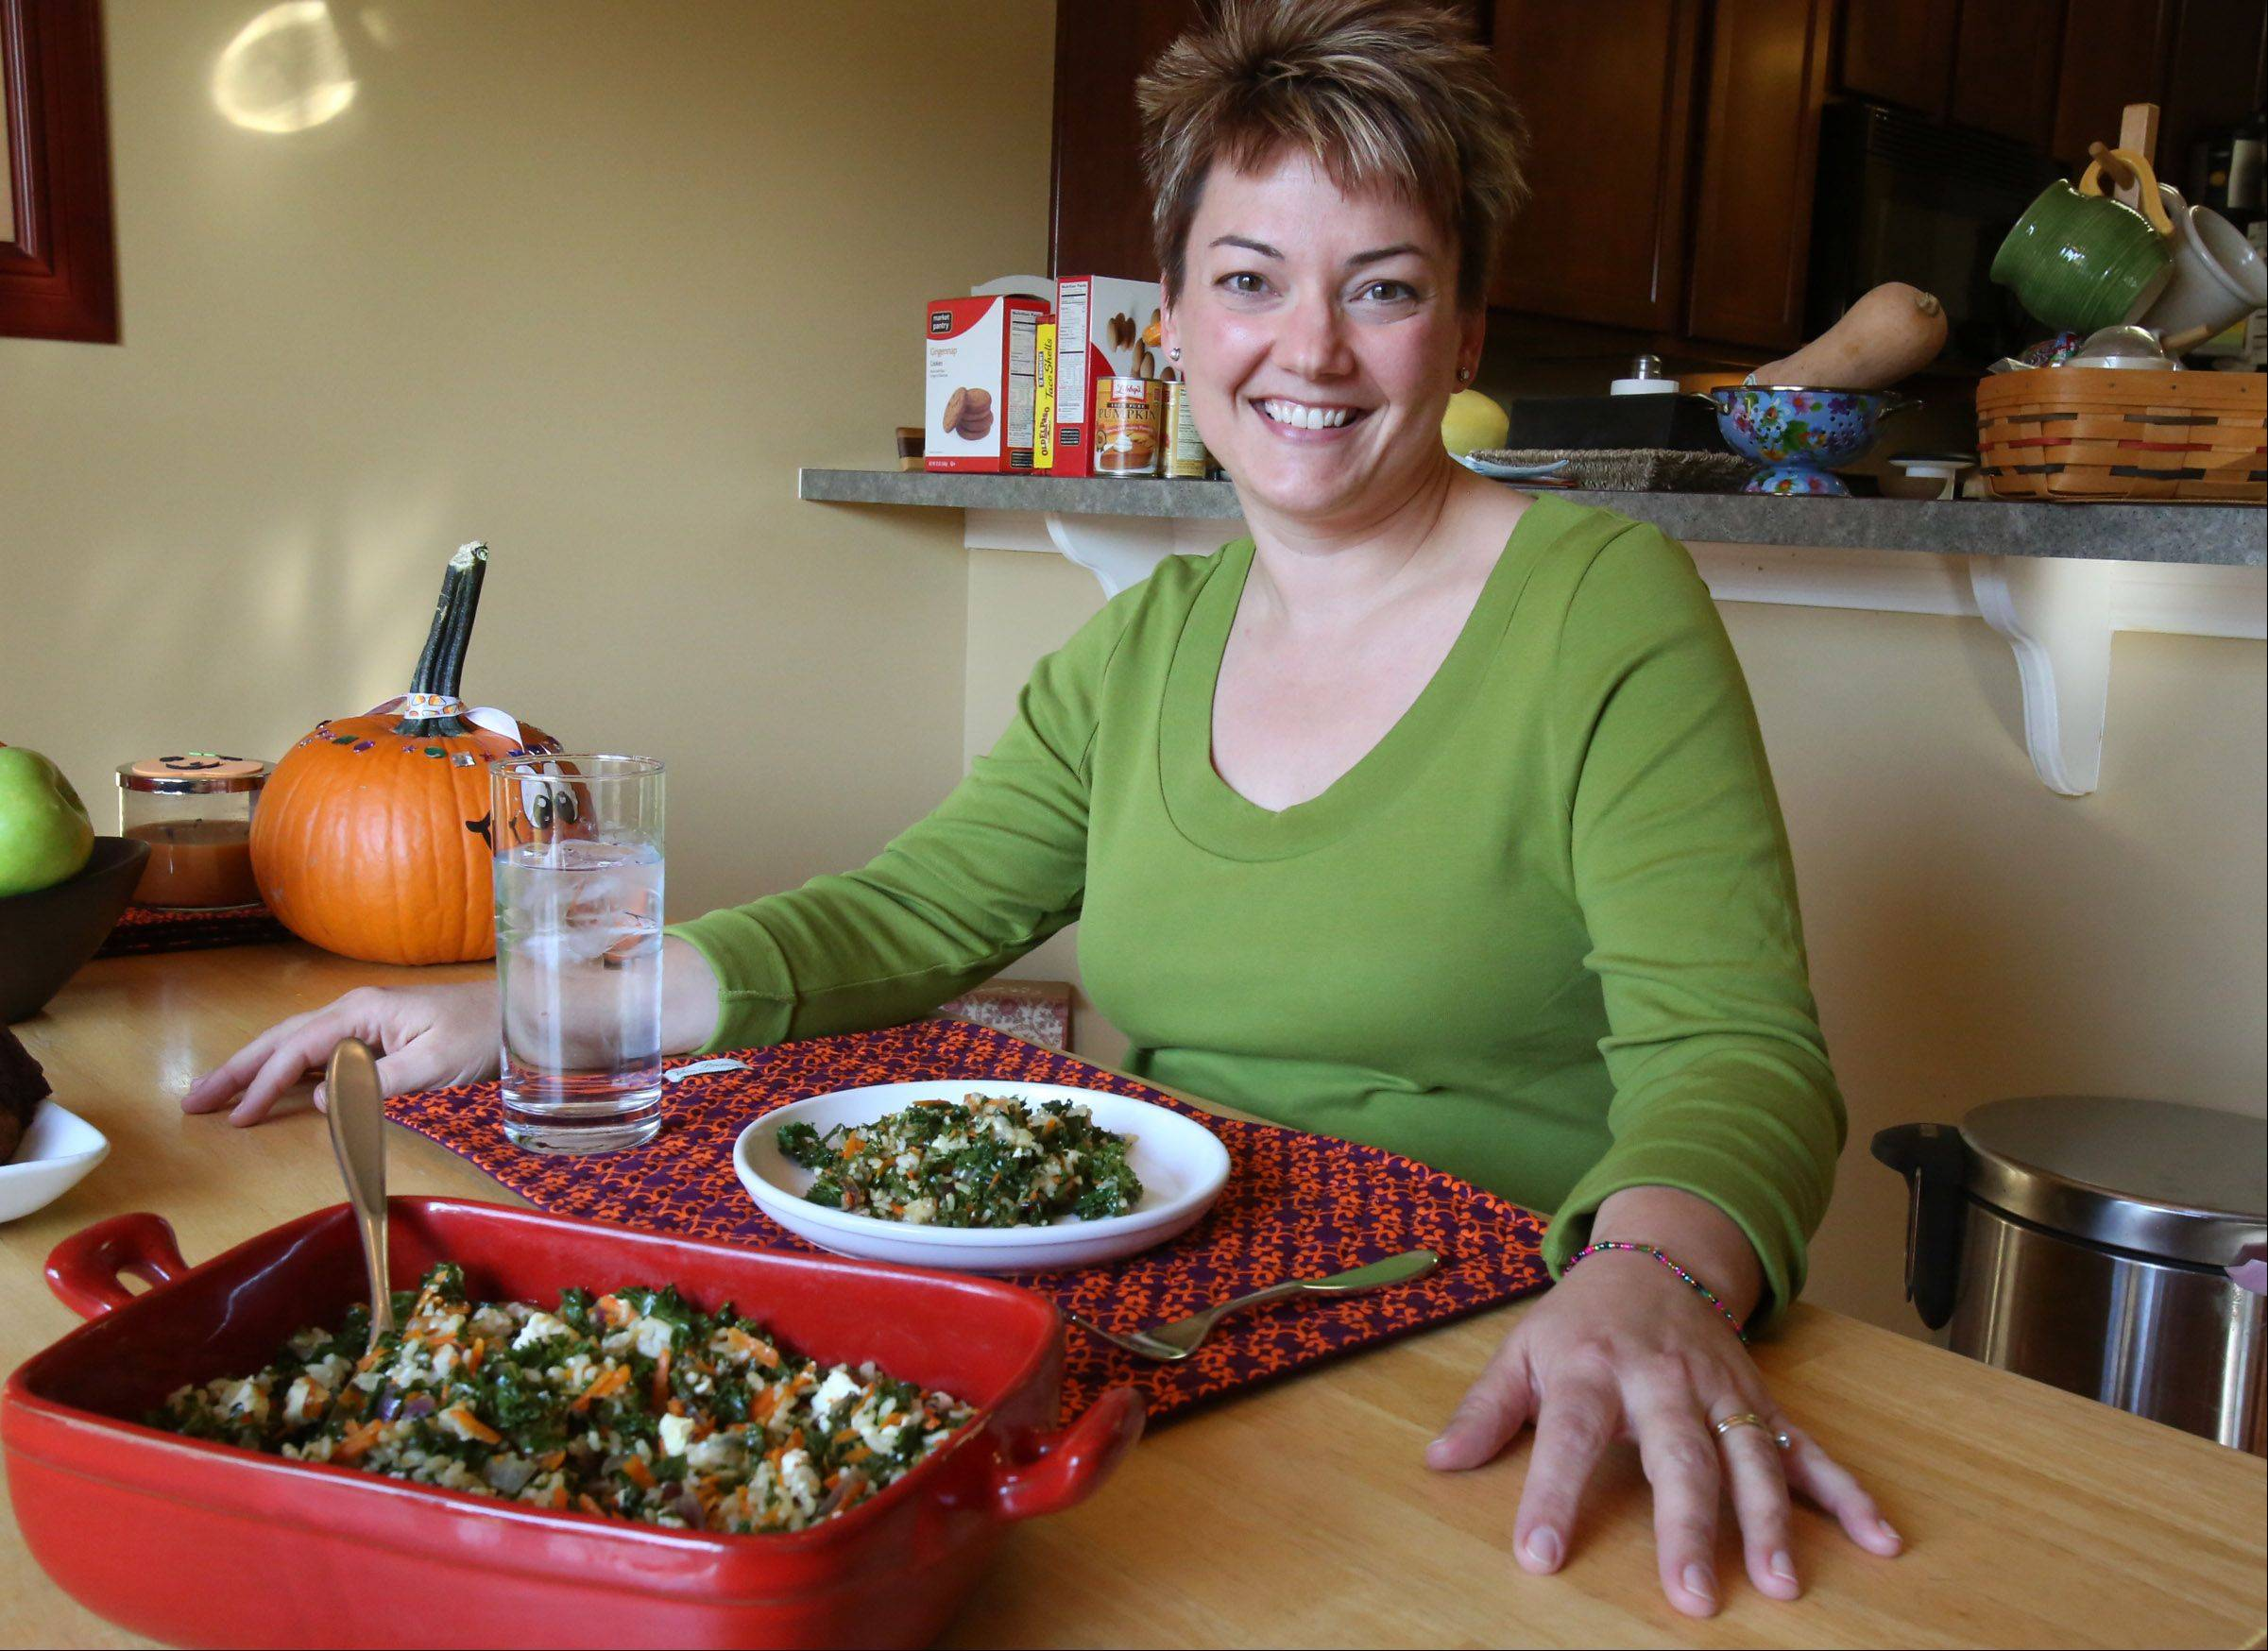 Cook of the Week: Dietitian knows how to treat her family